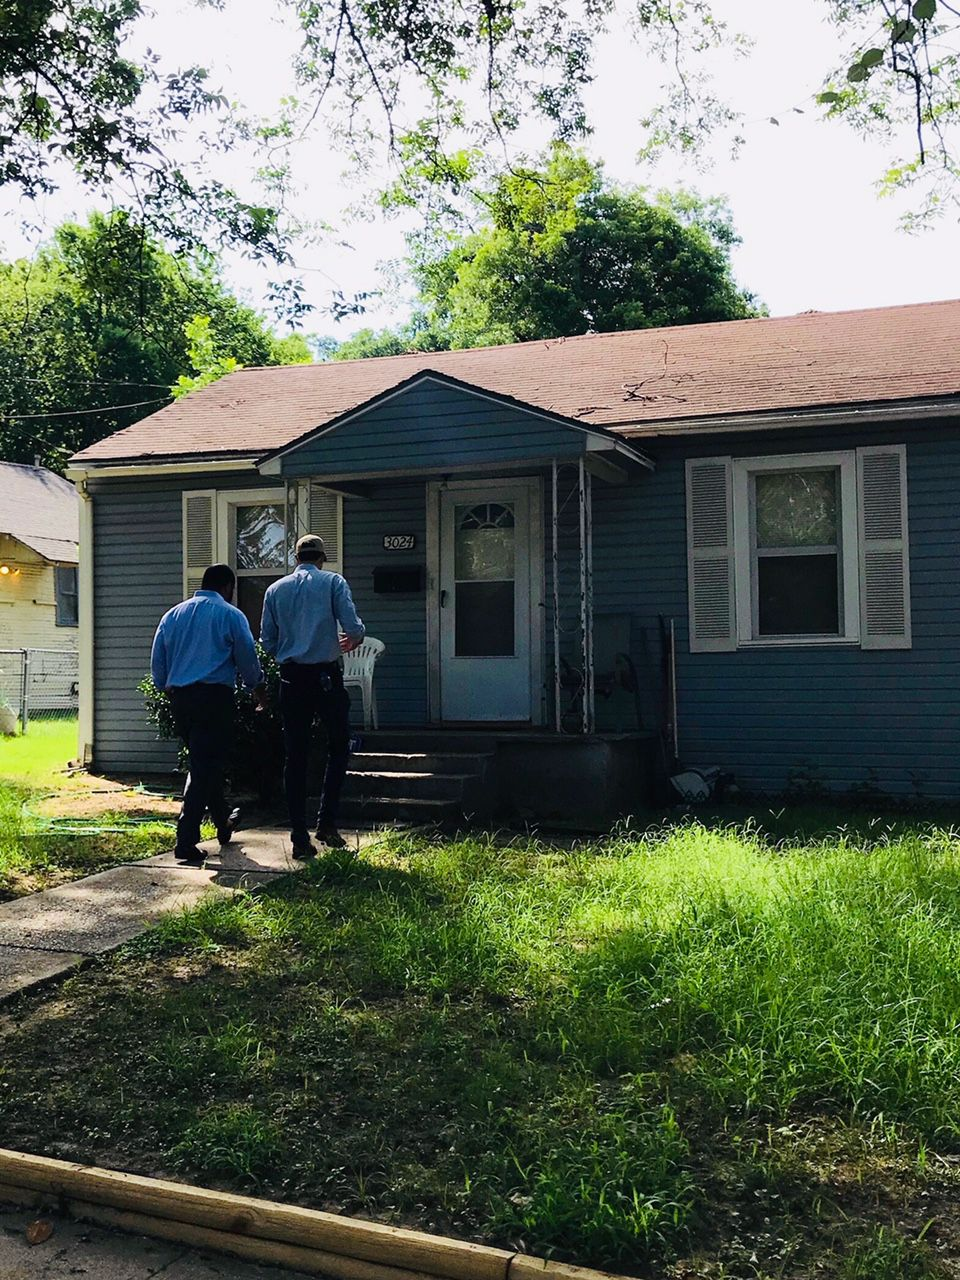 Senate candidate Beto O'Rourke, D-El Paso, knocks on doors in South Dallas with state Rep. Eric Johnson, D-Dallas.